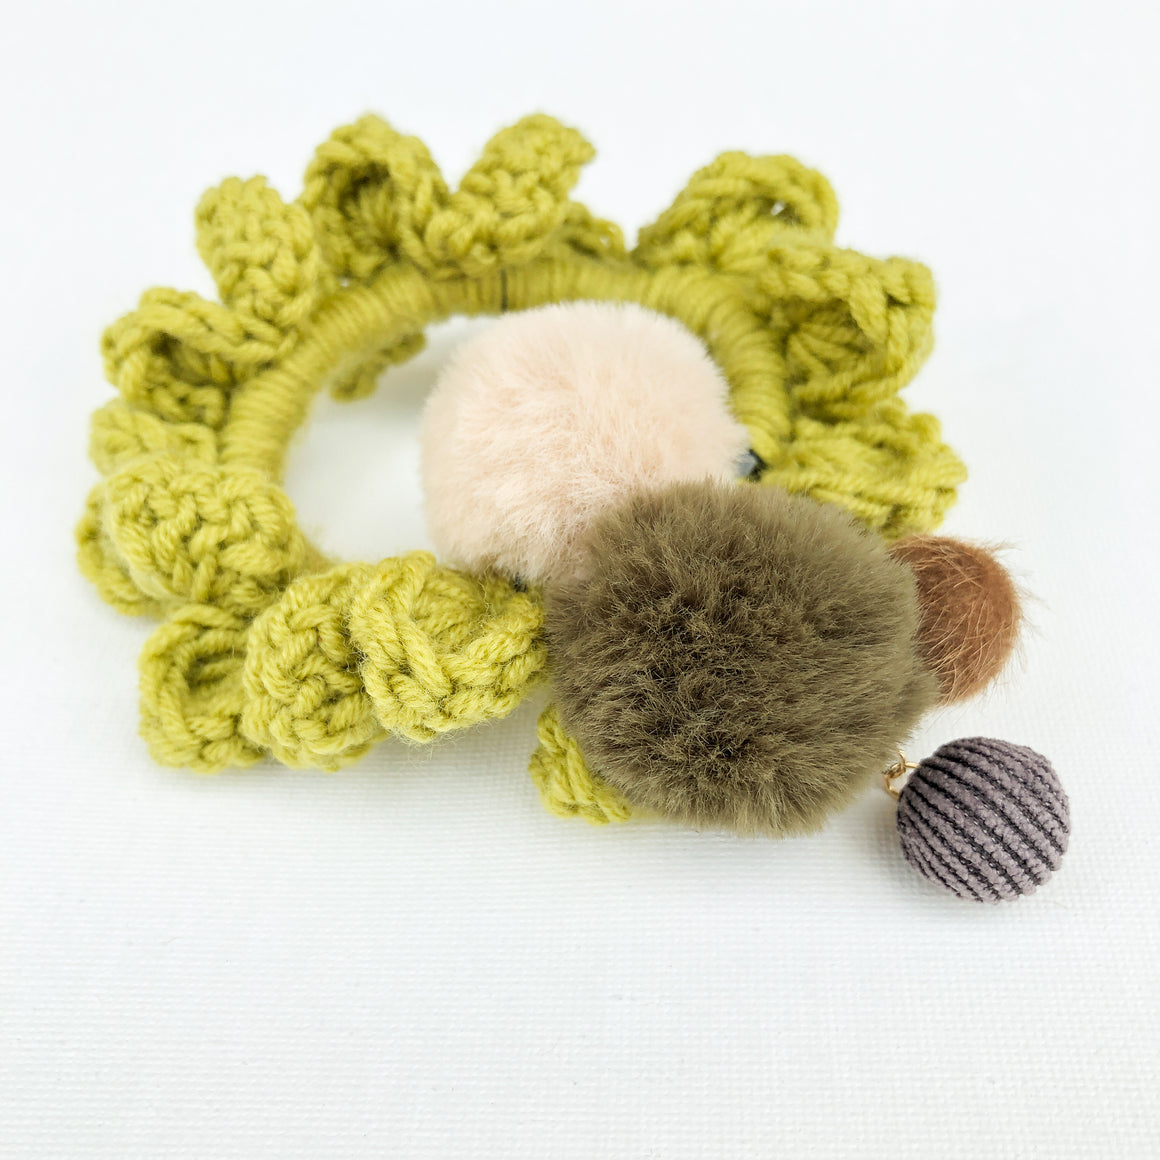 Crochet Blossom Hair Scrunchie | Light Olive Shade | Handmade Canada Bliss Hair Accessory